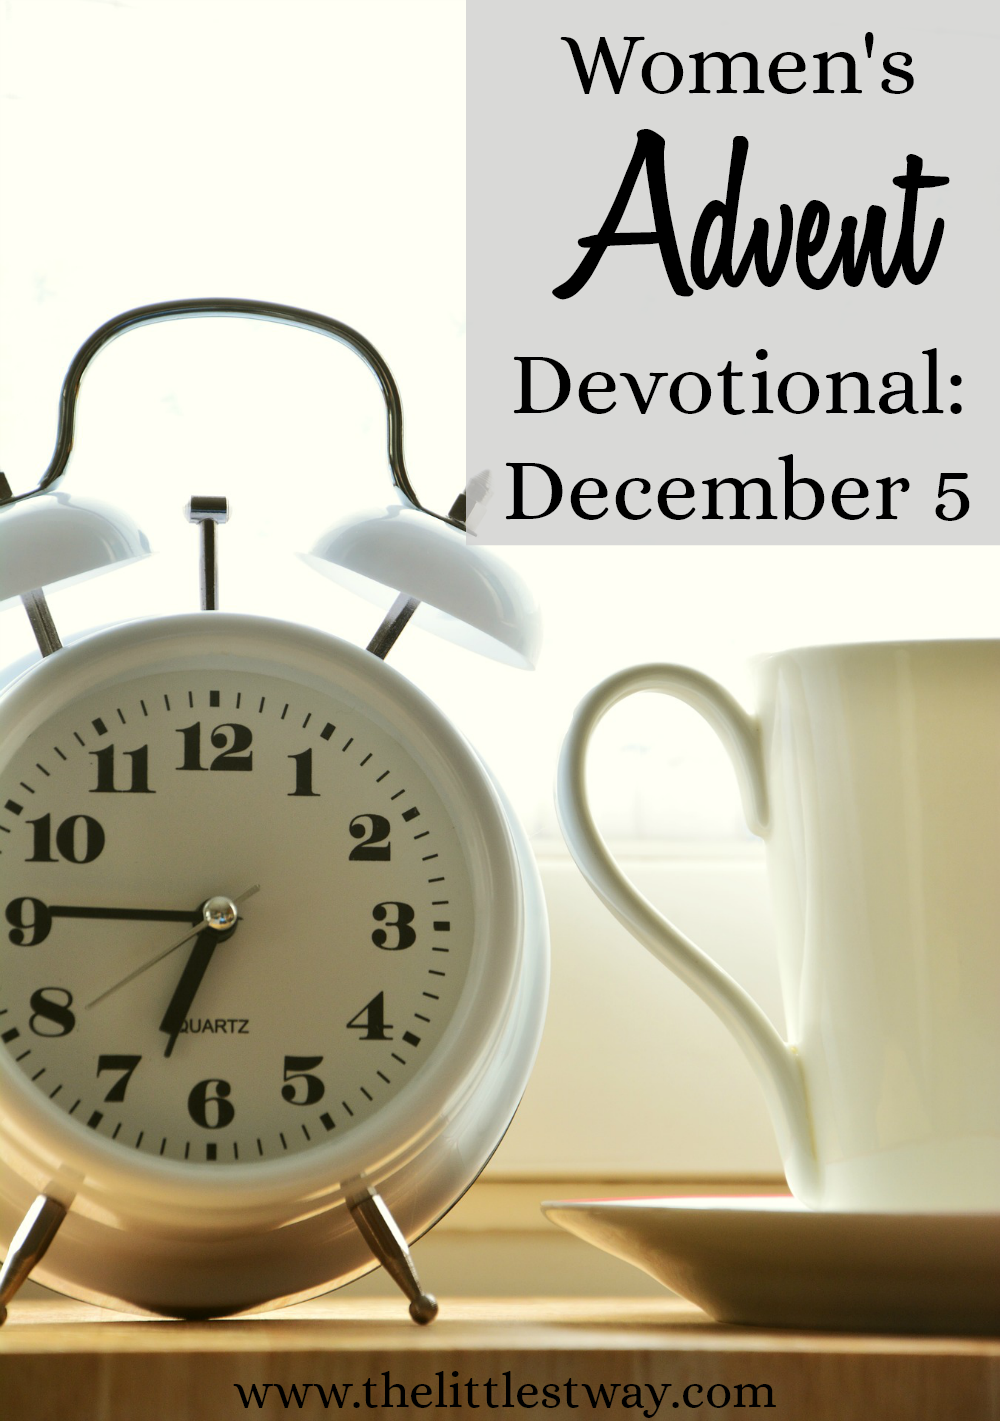 A Women's Advent Devotional that is simple, short, and to the point...but spiritually rich and soul-satisfying deep.